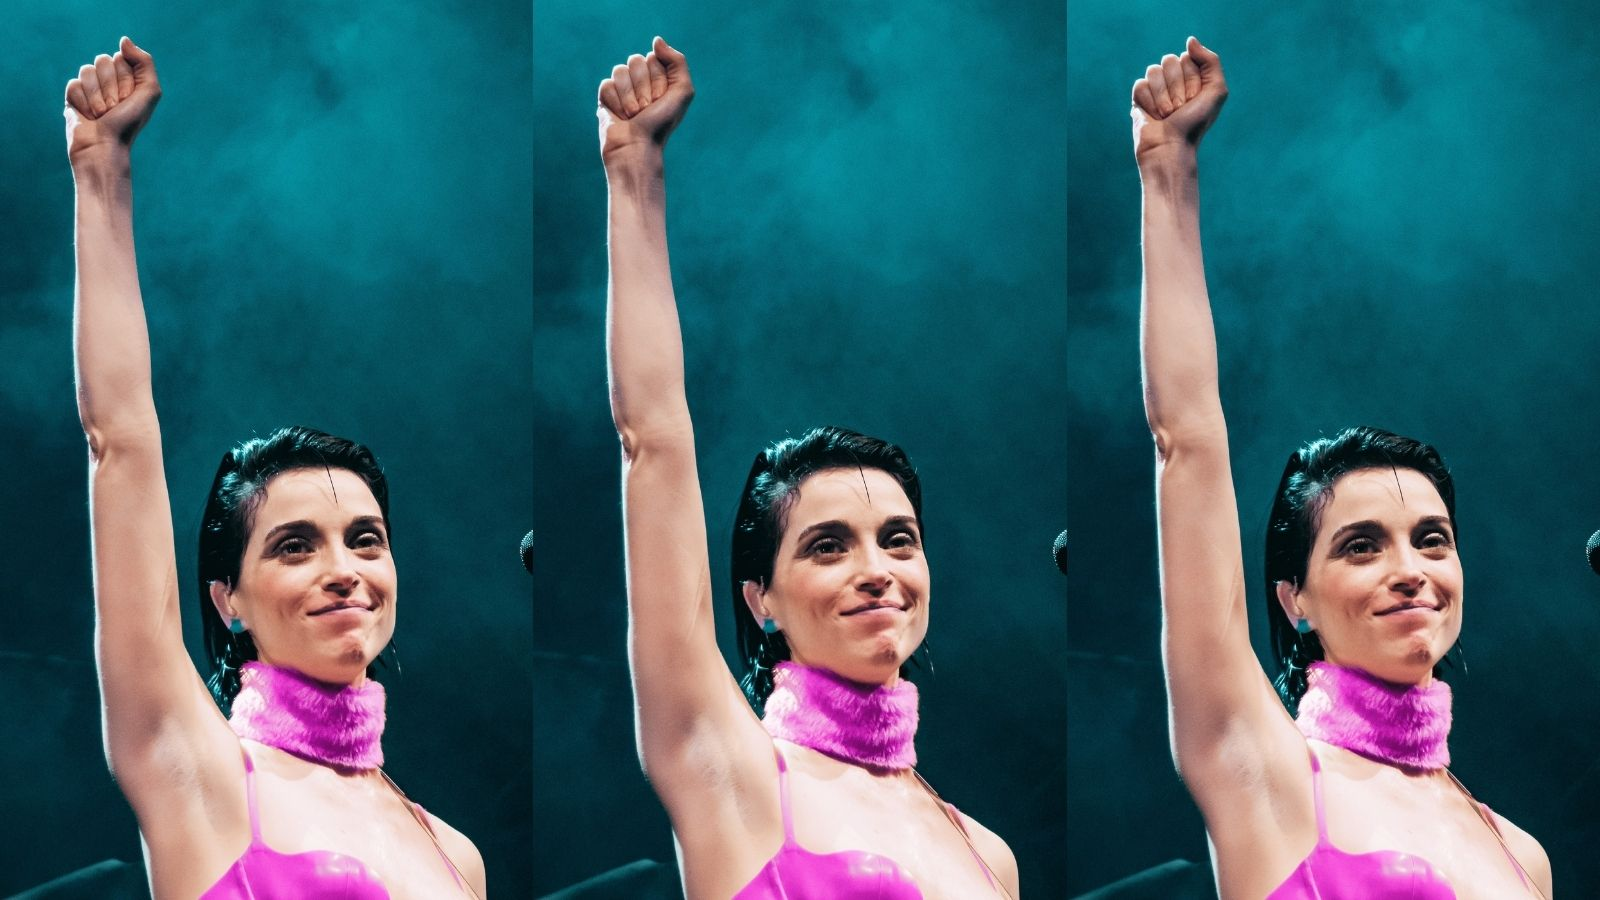 St. Vincent raising her fist in the air